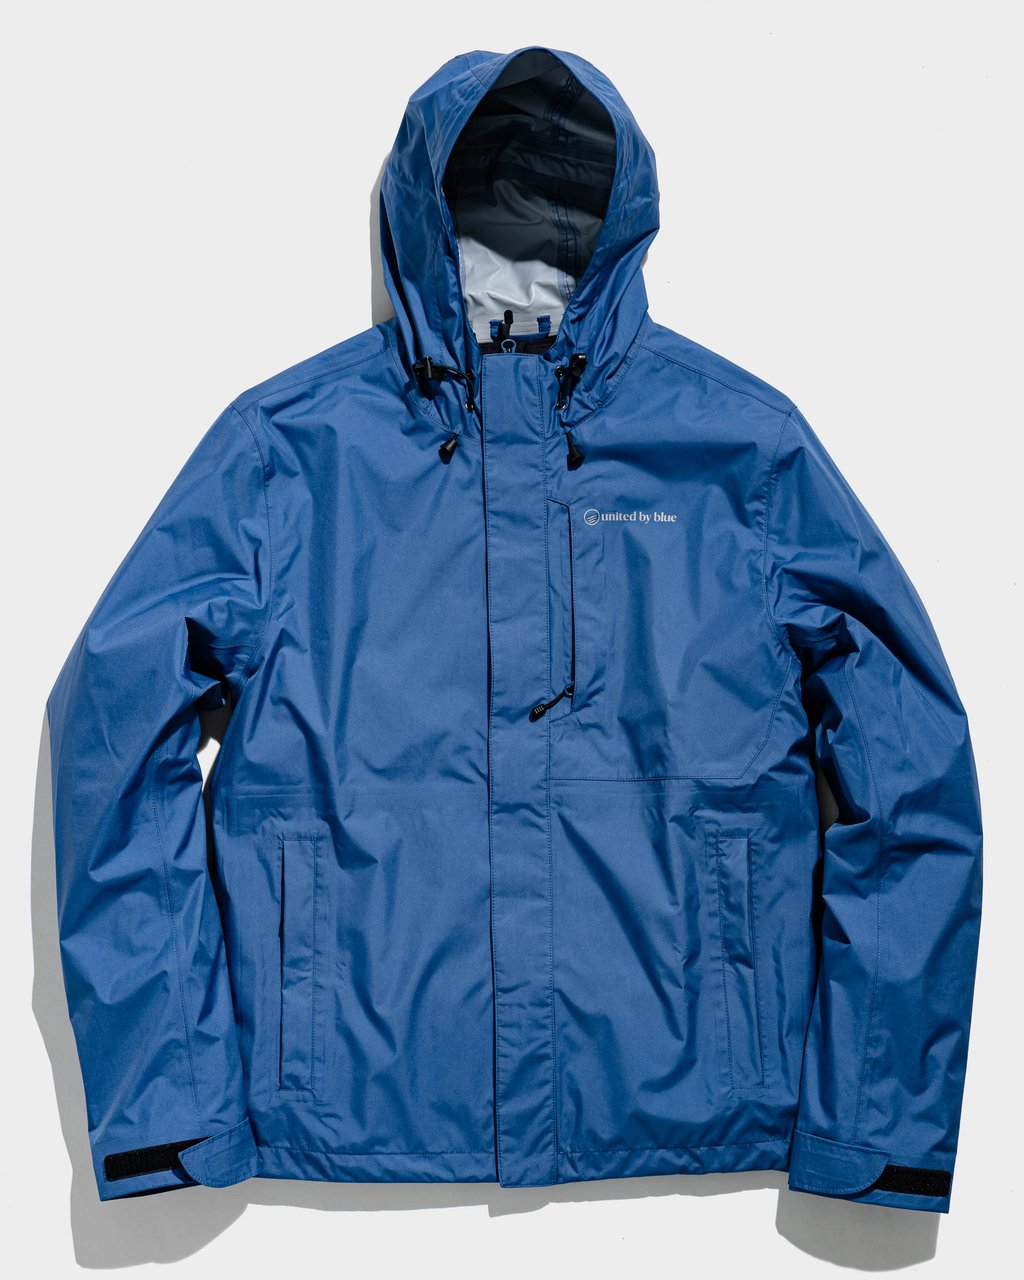 United by Blue Men's Recycled Rain Shell in blue